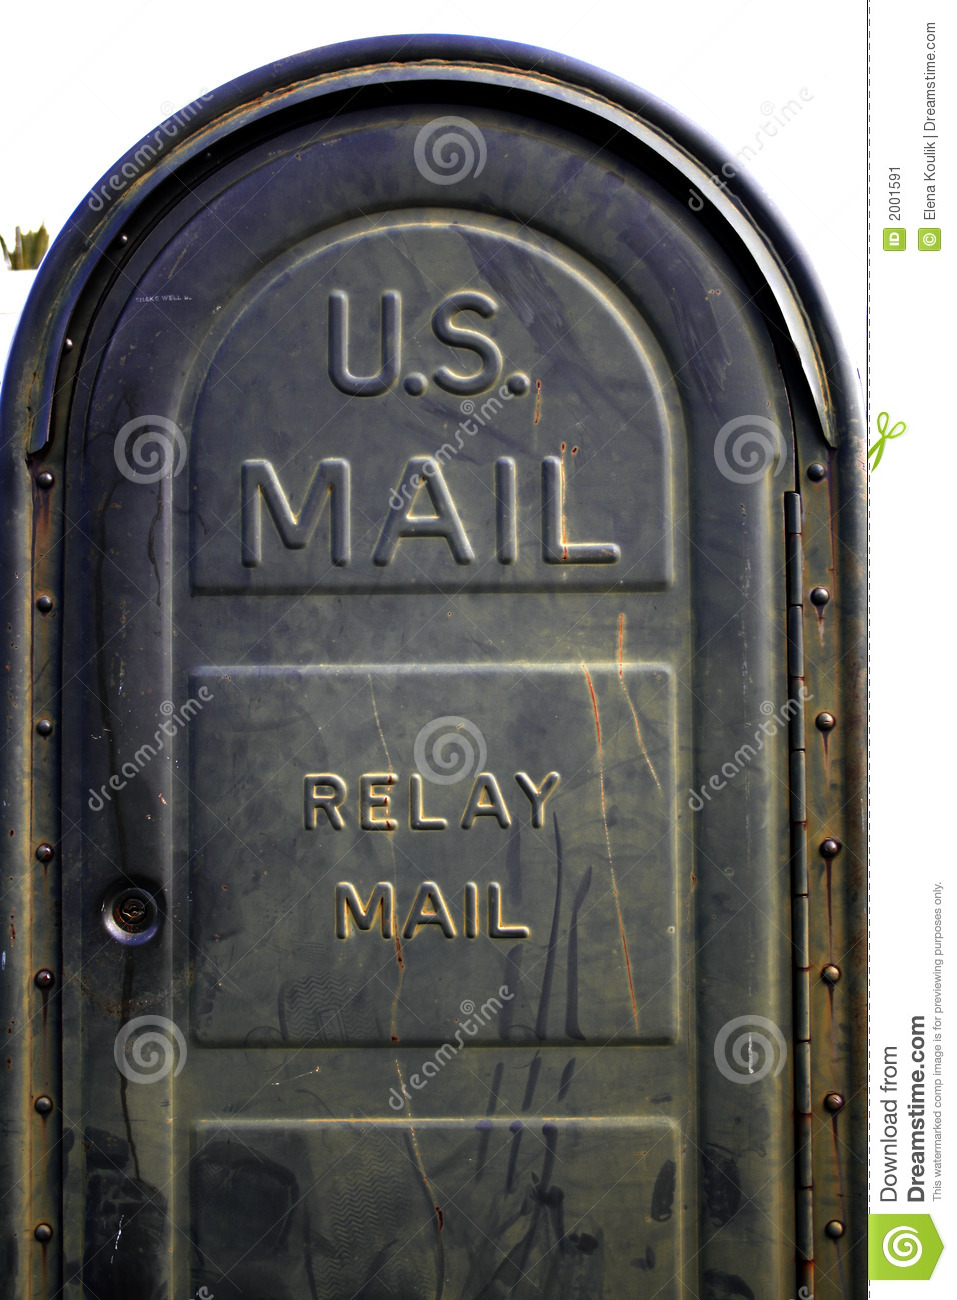 USA Mail, Post Box stock image  Image of service, mail - 2001591